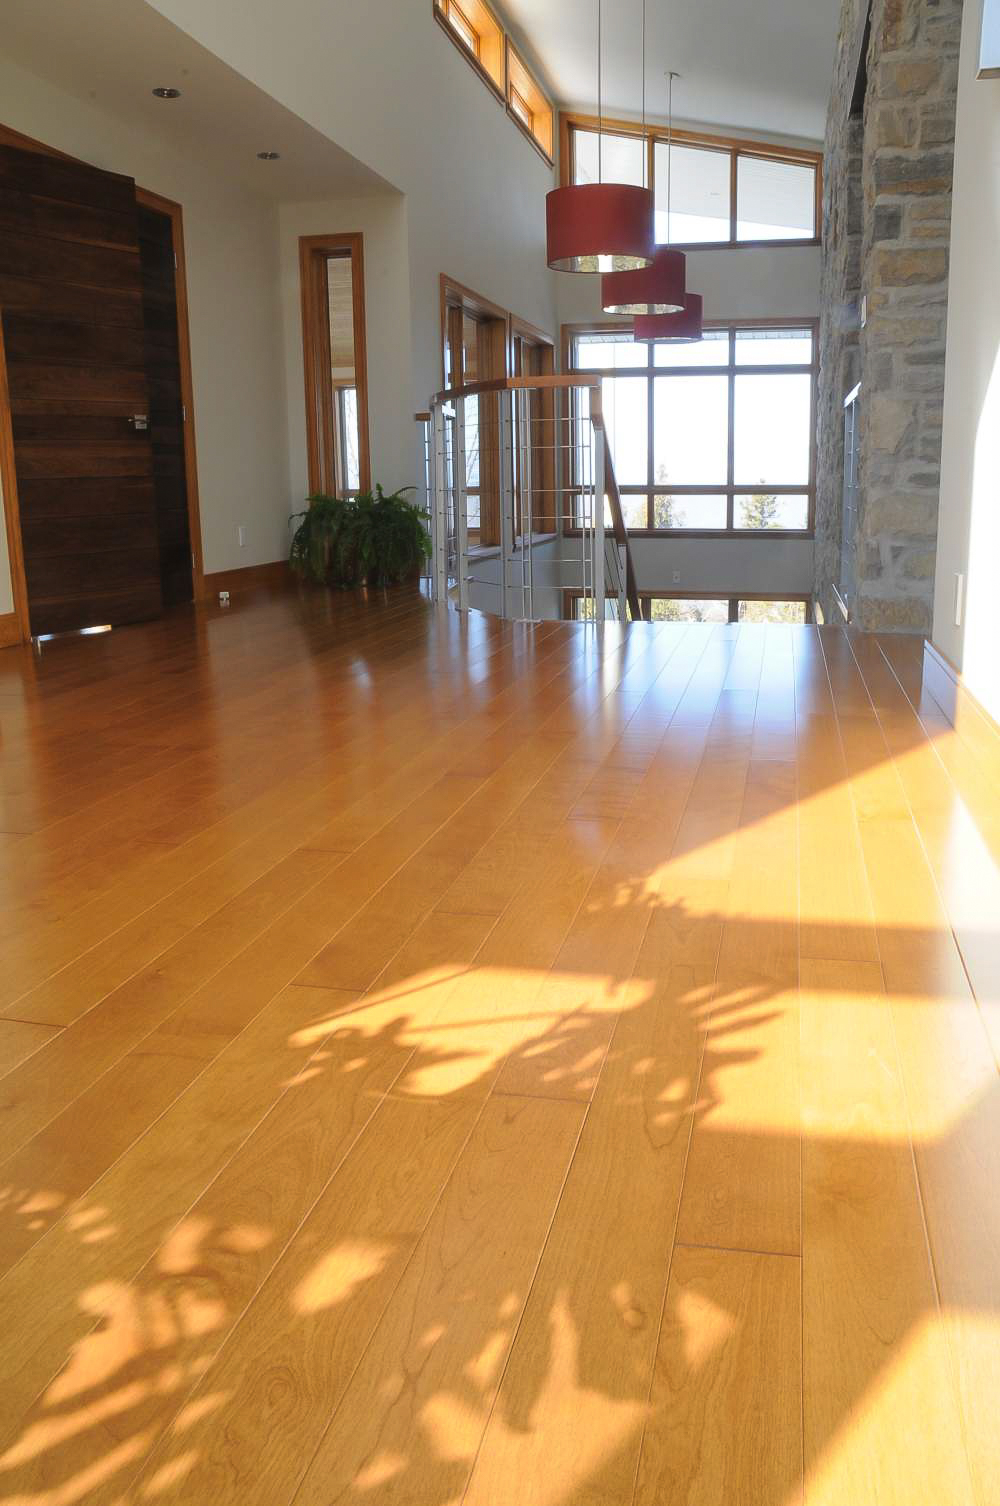 birch select 5 inch plank flooring.jpg